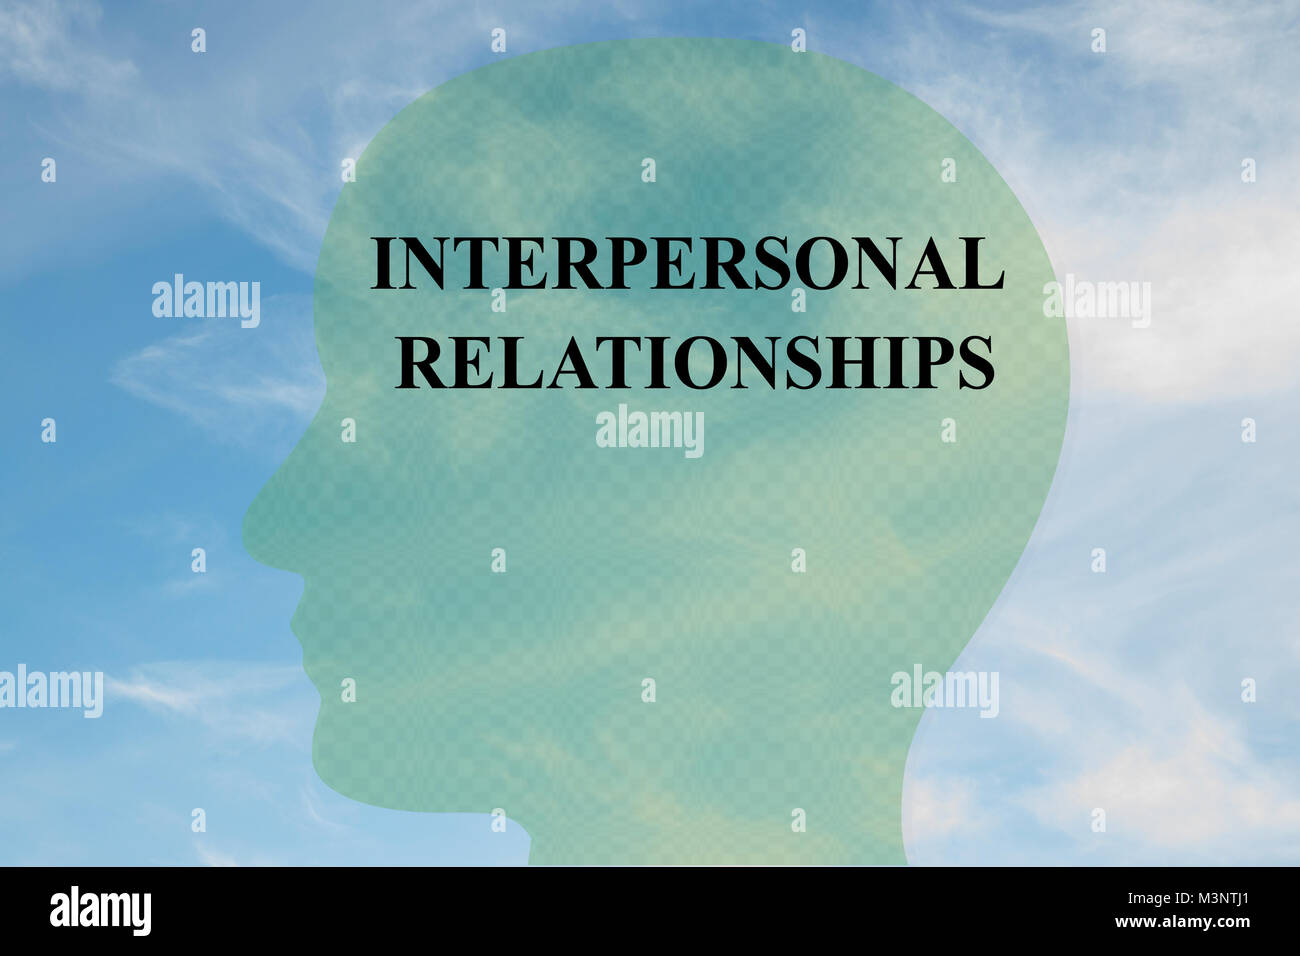 Render illustration of INTERPERSONAL RELATIONSHIPS title on head silhouette, with cloudy sky as a background. - Stock Image